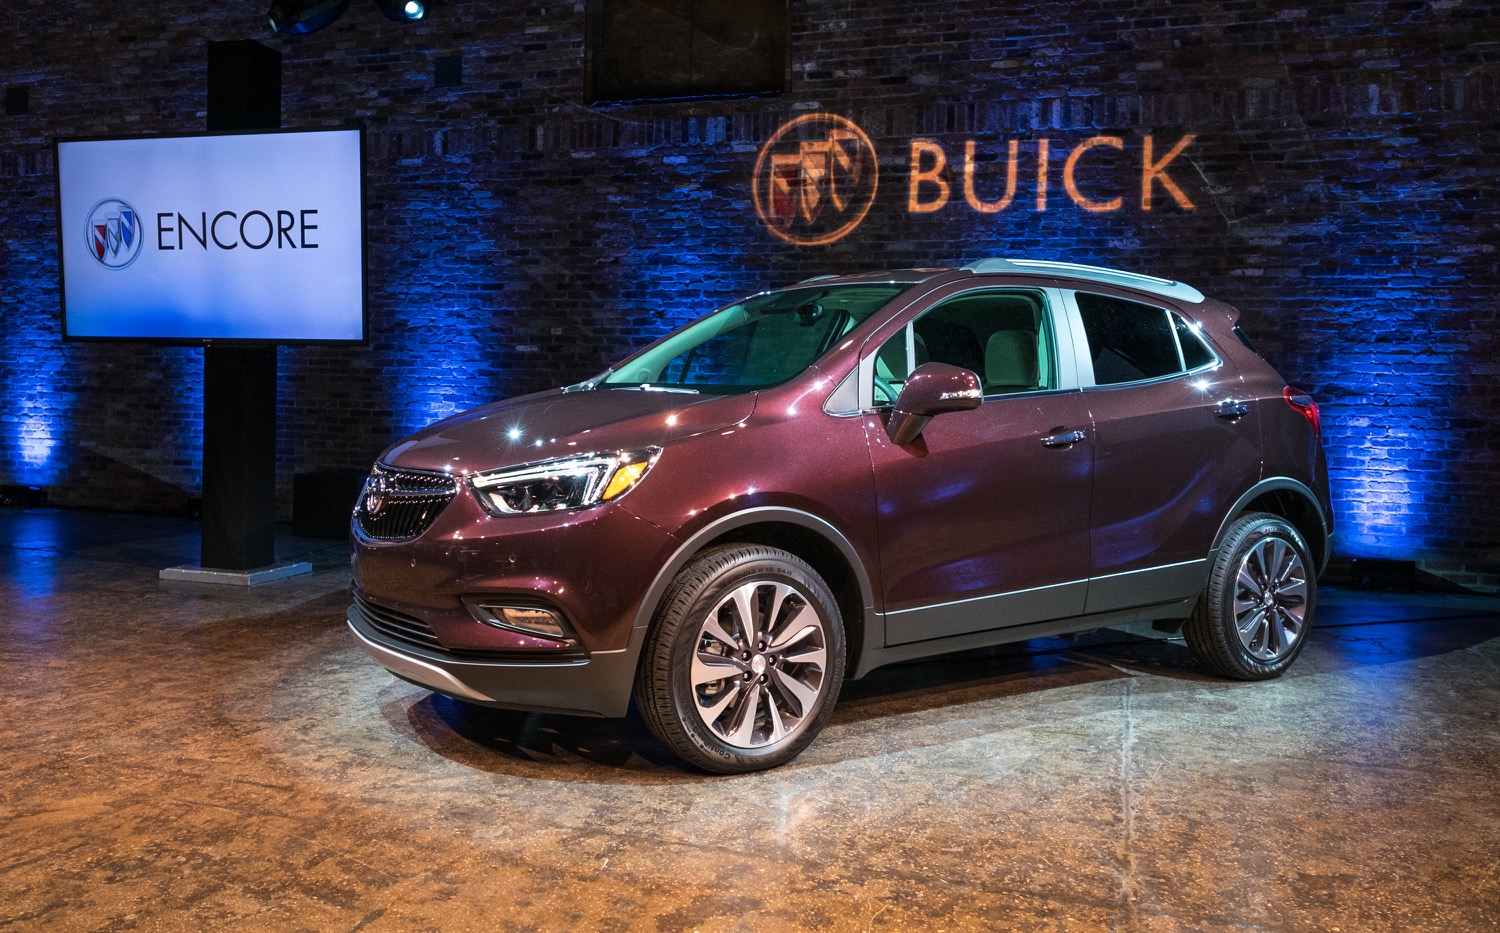 2019 Buick Encore Exterior Colors | Gm Authority 2022 Buick Encore Release Date, Specifications, Exterior Colors